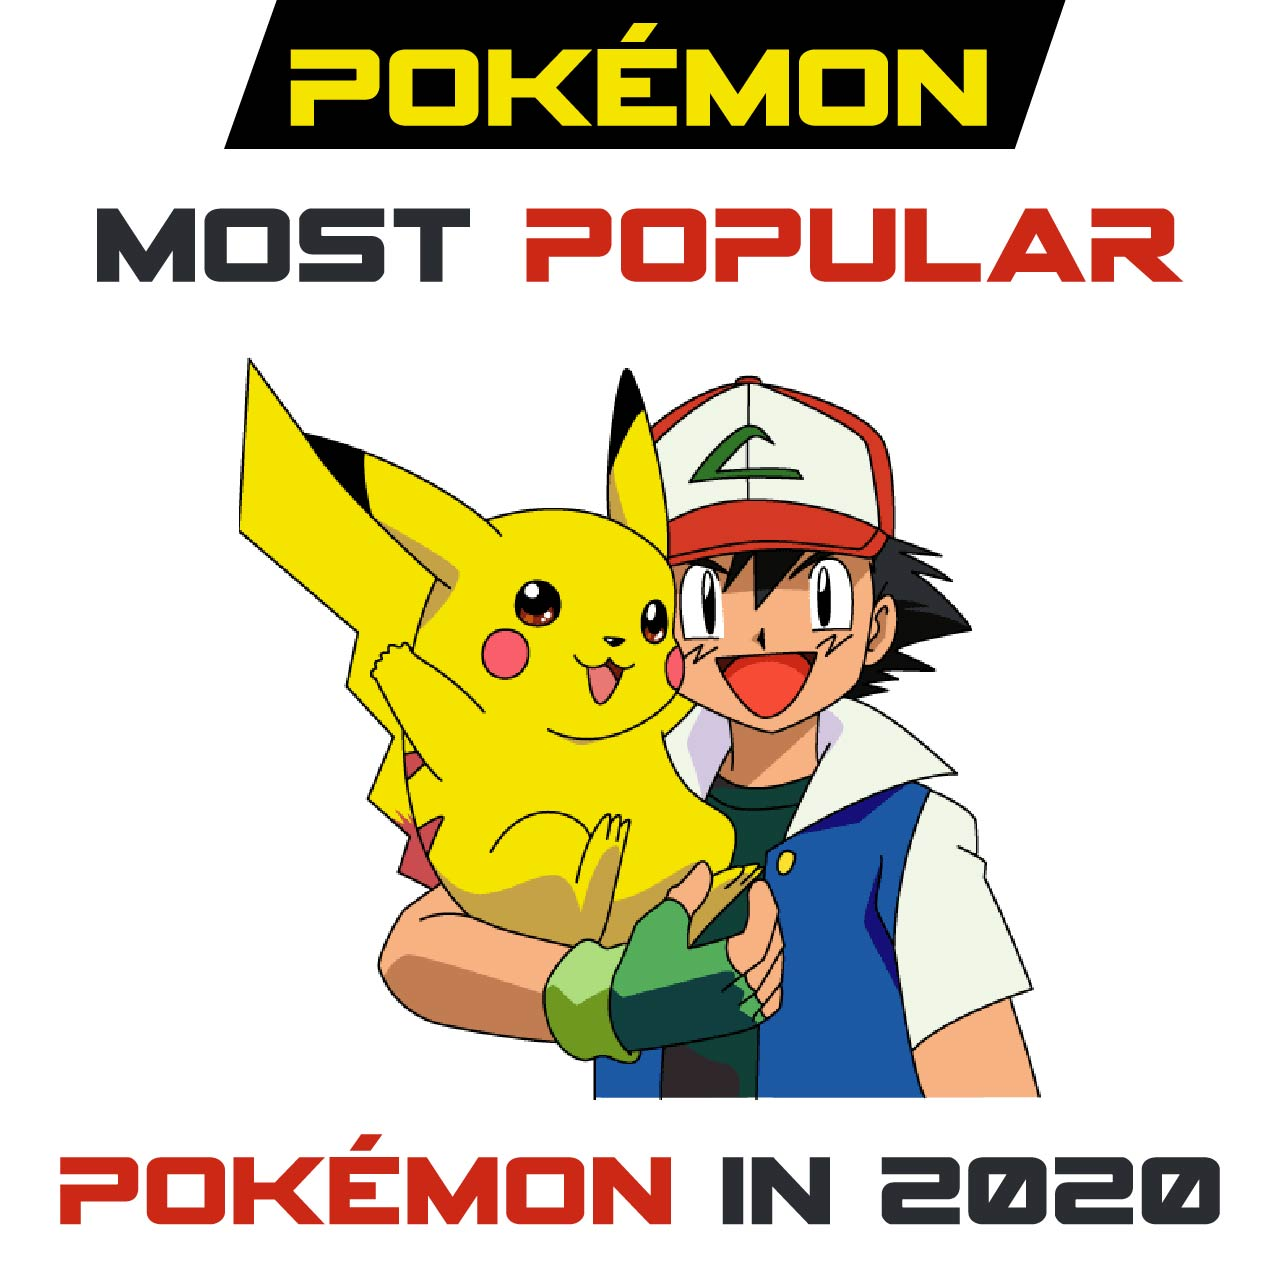 Pokémon: Most Popular Pokémon in 2021